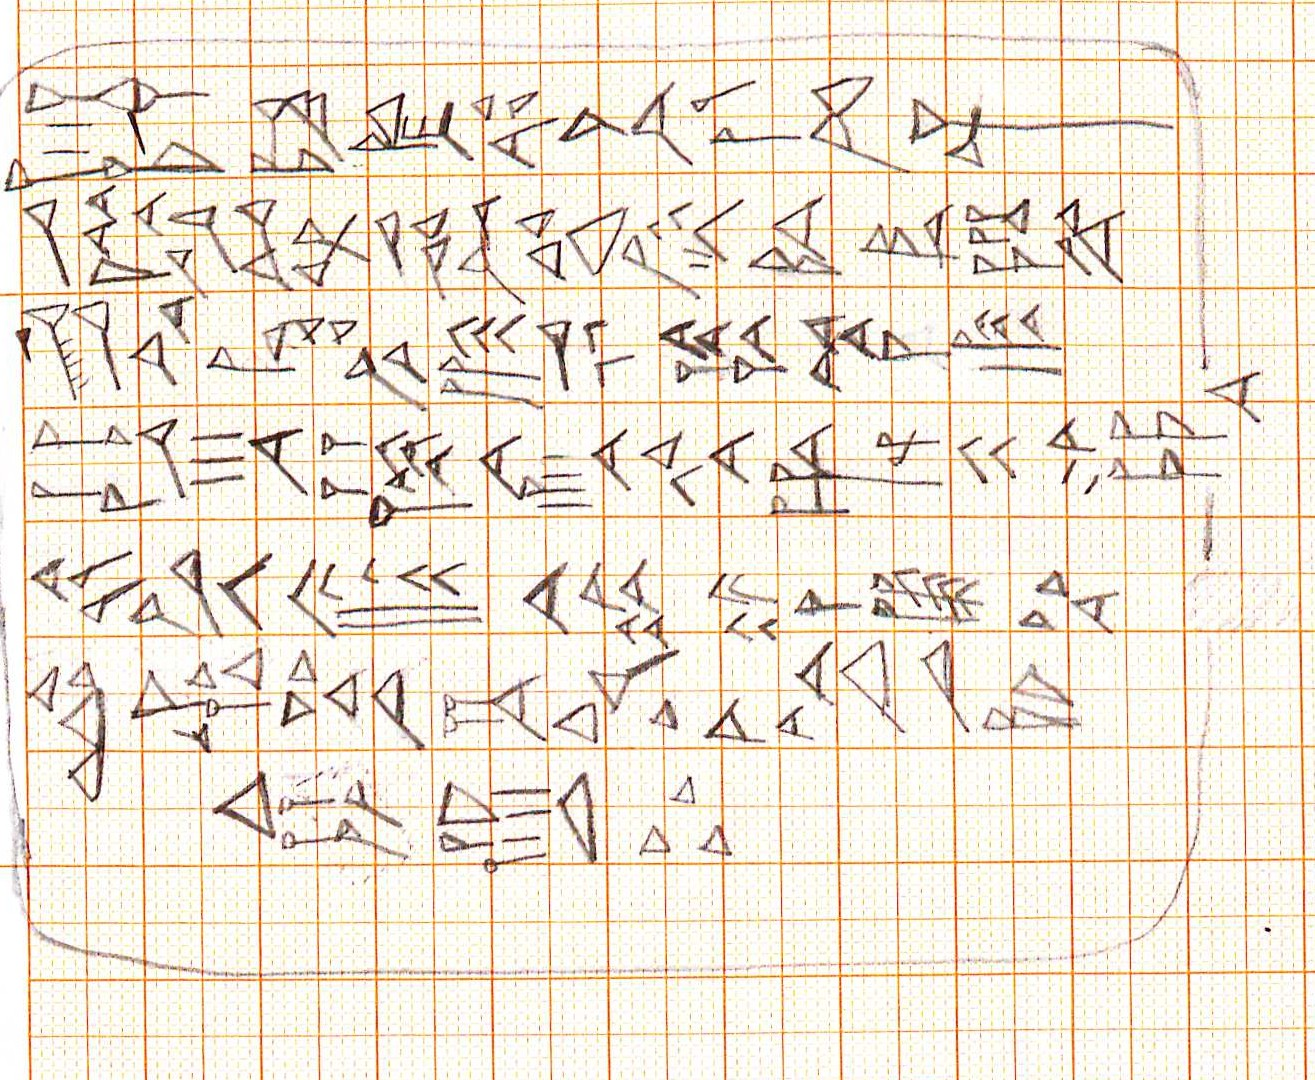 A line drawing of one side of a cuneiform tablet in the Hilprecht Collection, Jena